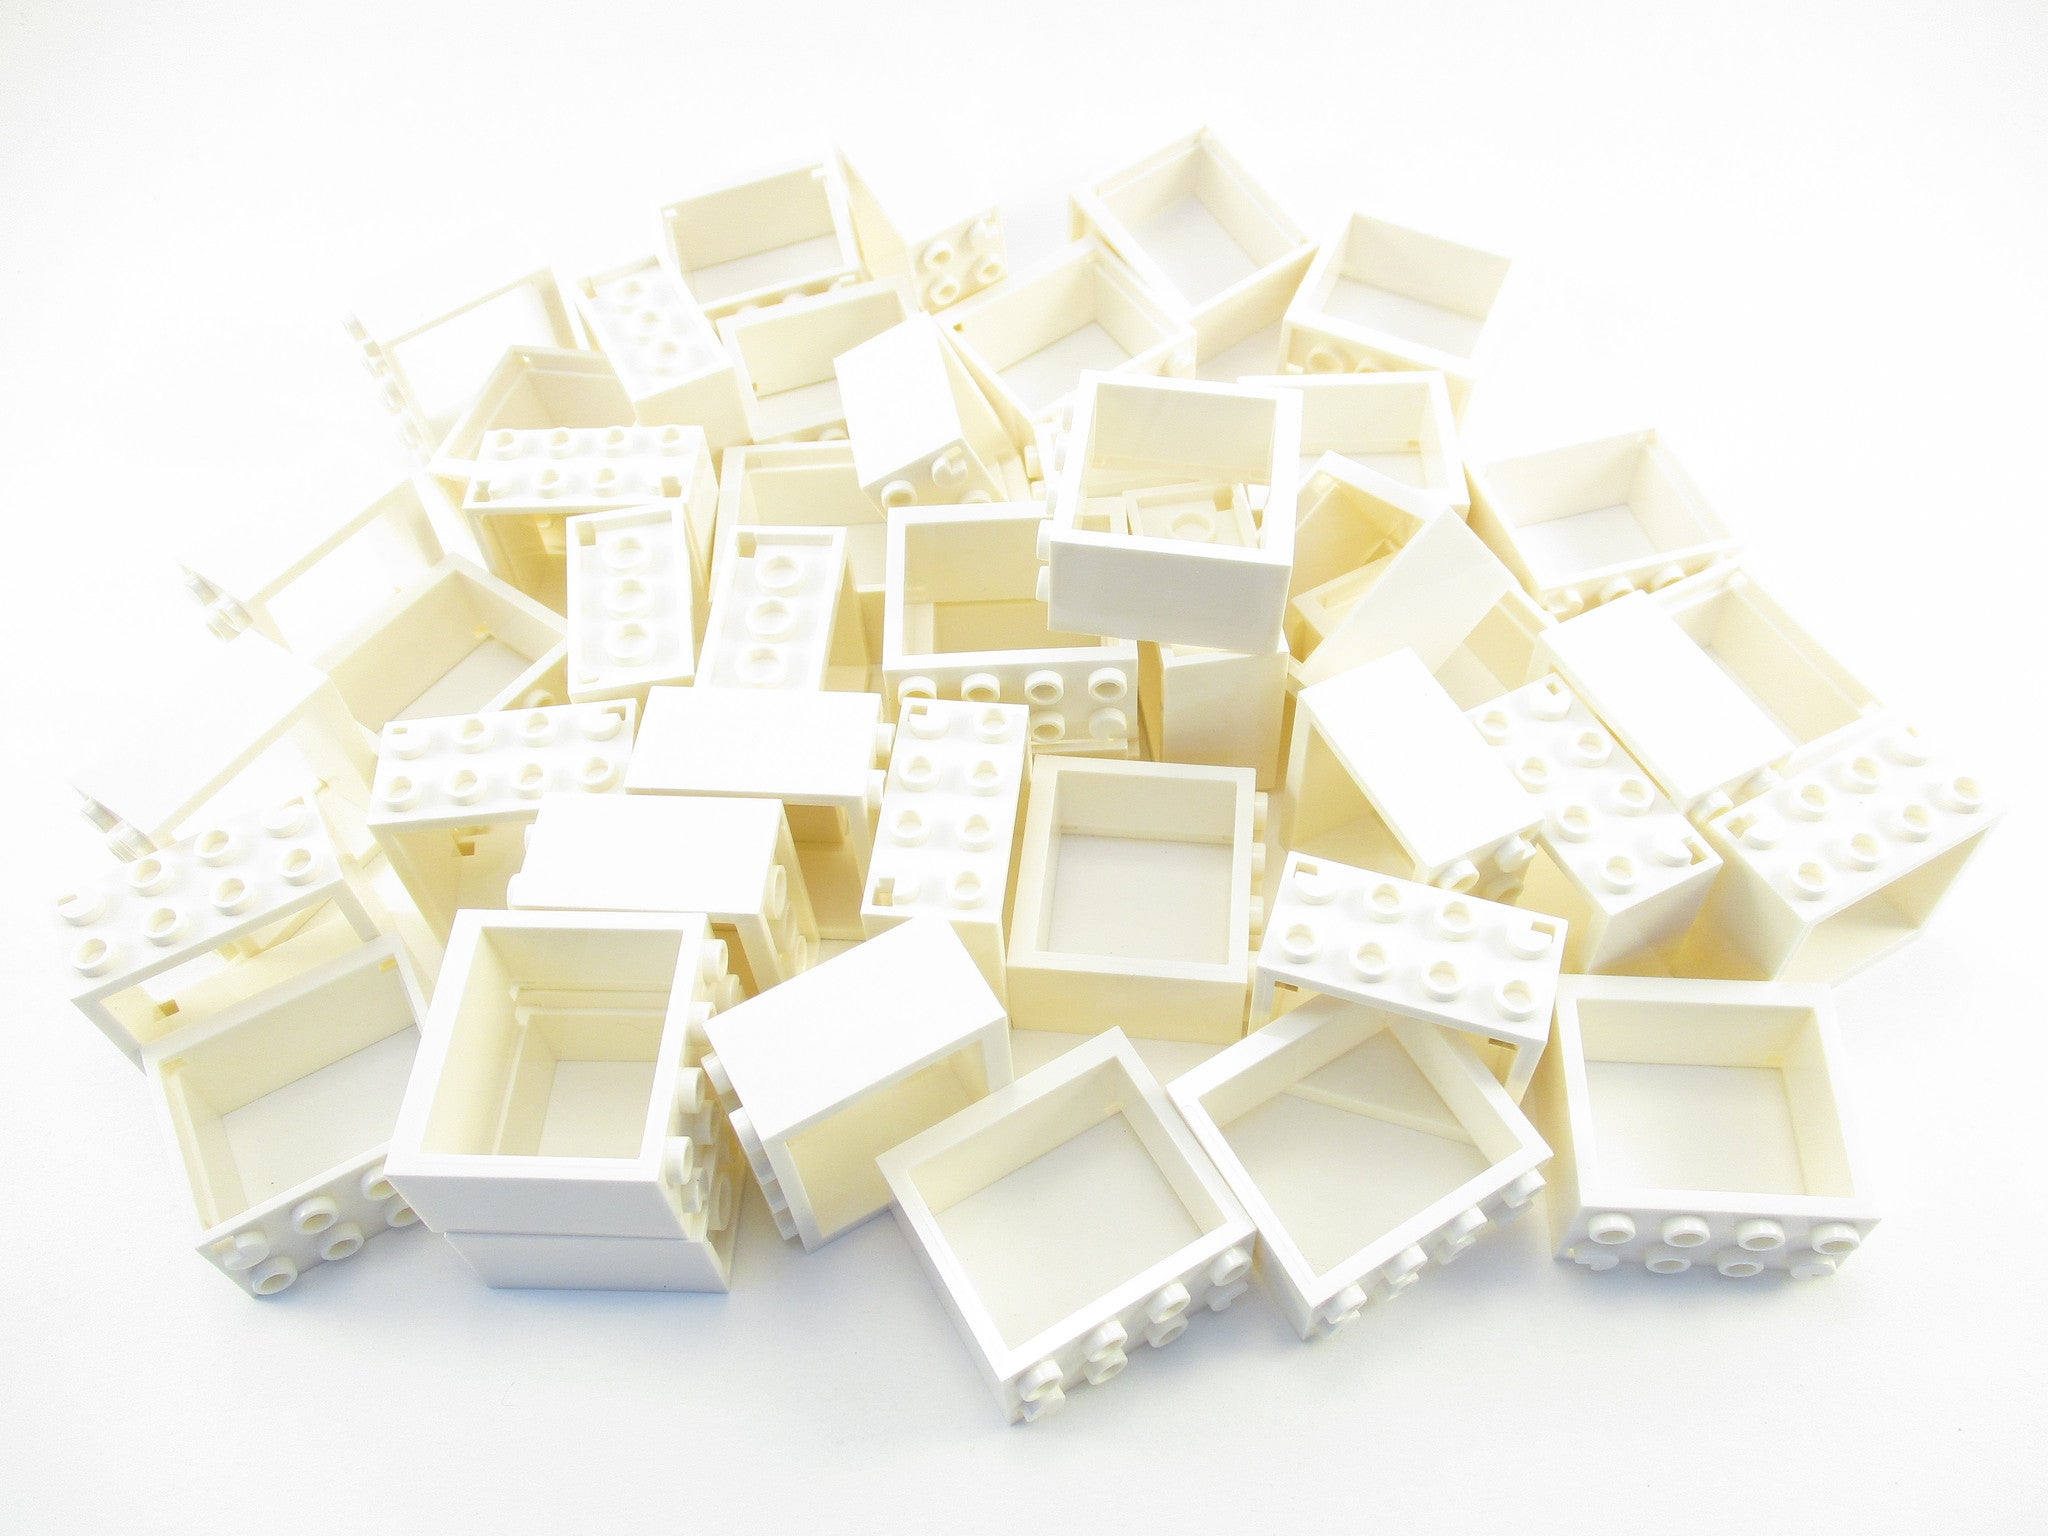 LEGO White Window 2 x 4 x 3 Frame Lot of 25 Parts Pieces 60598